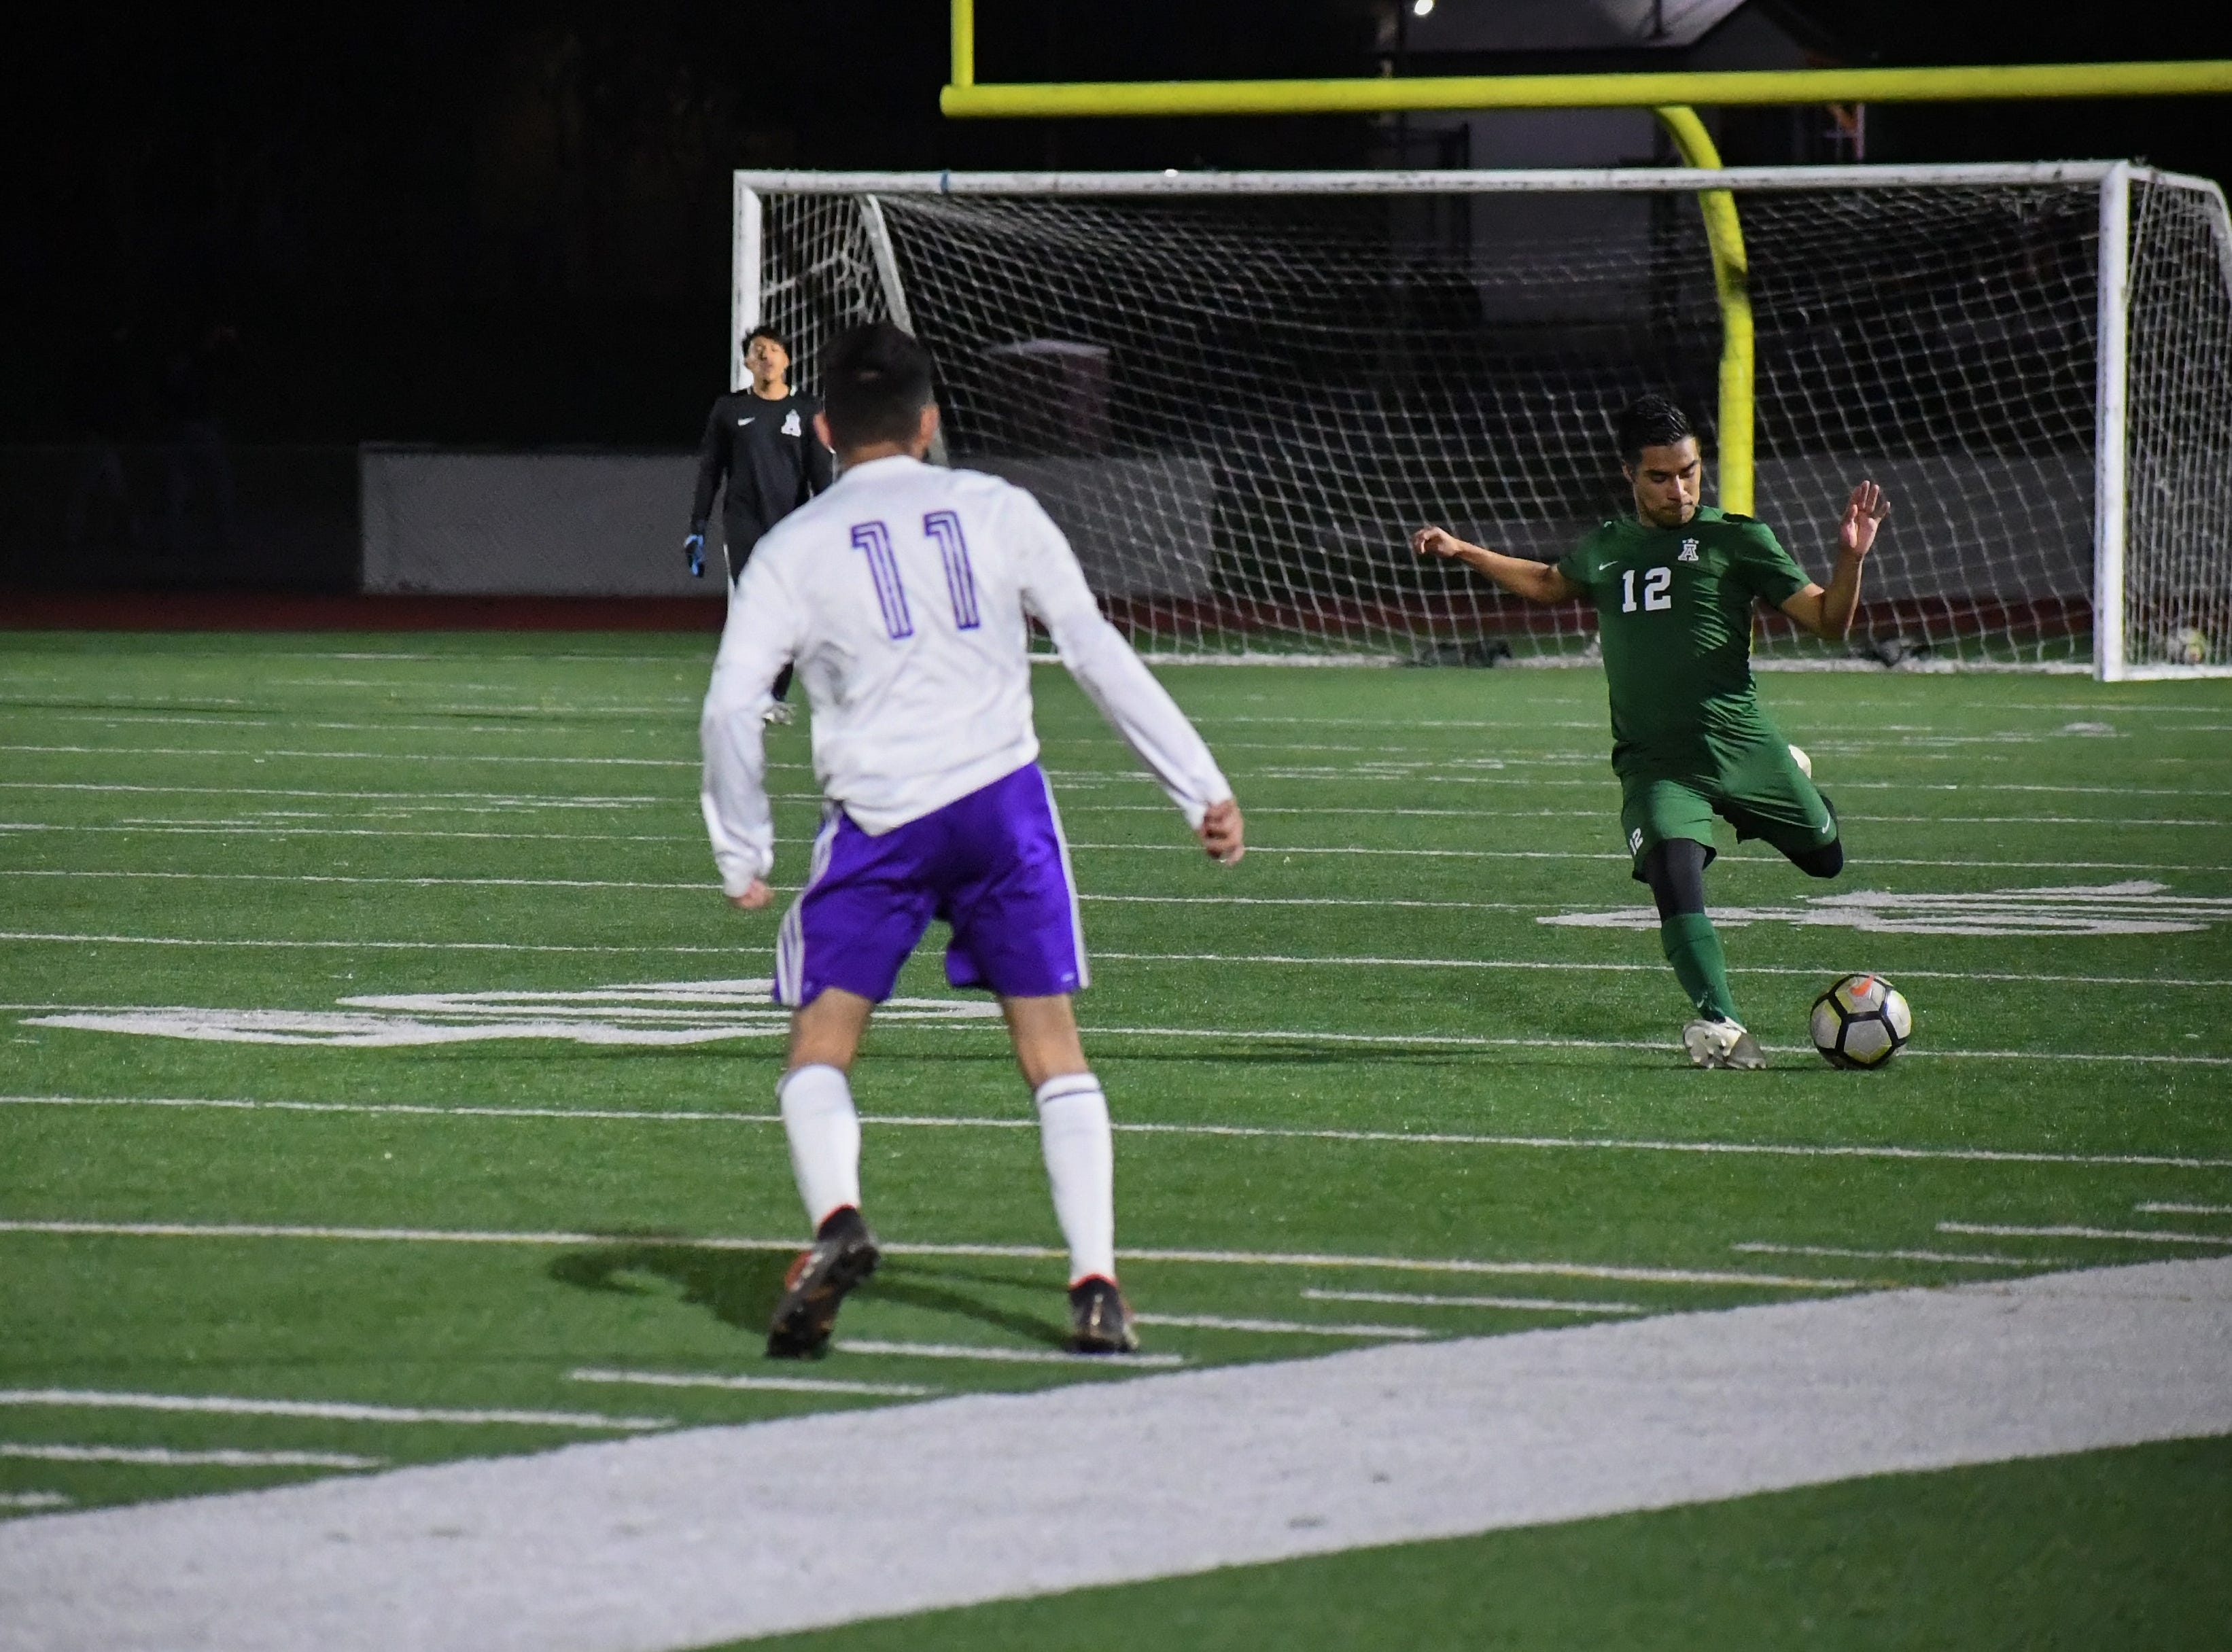 Alisal midfielder Jesus Gregorio (12) readies to fire a pass across midfield.